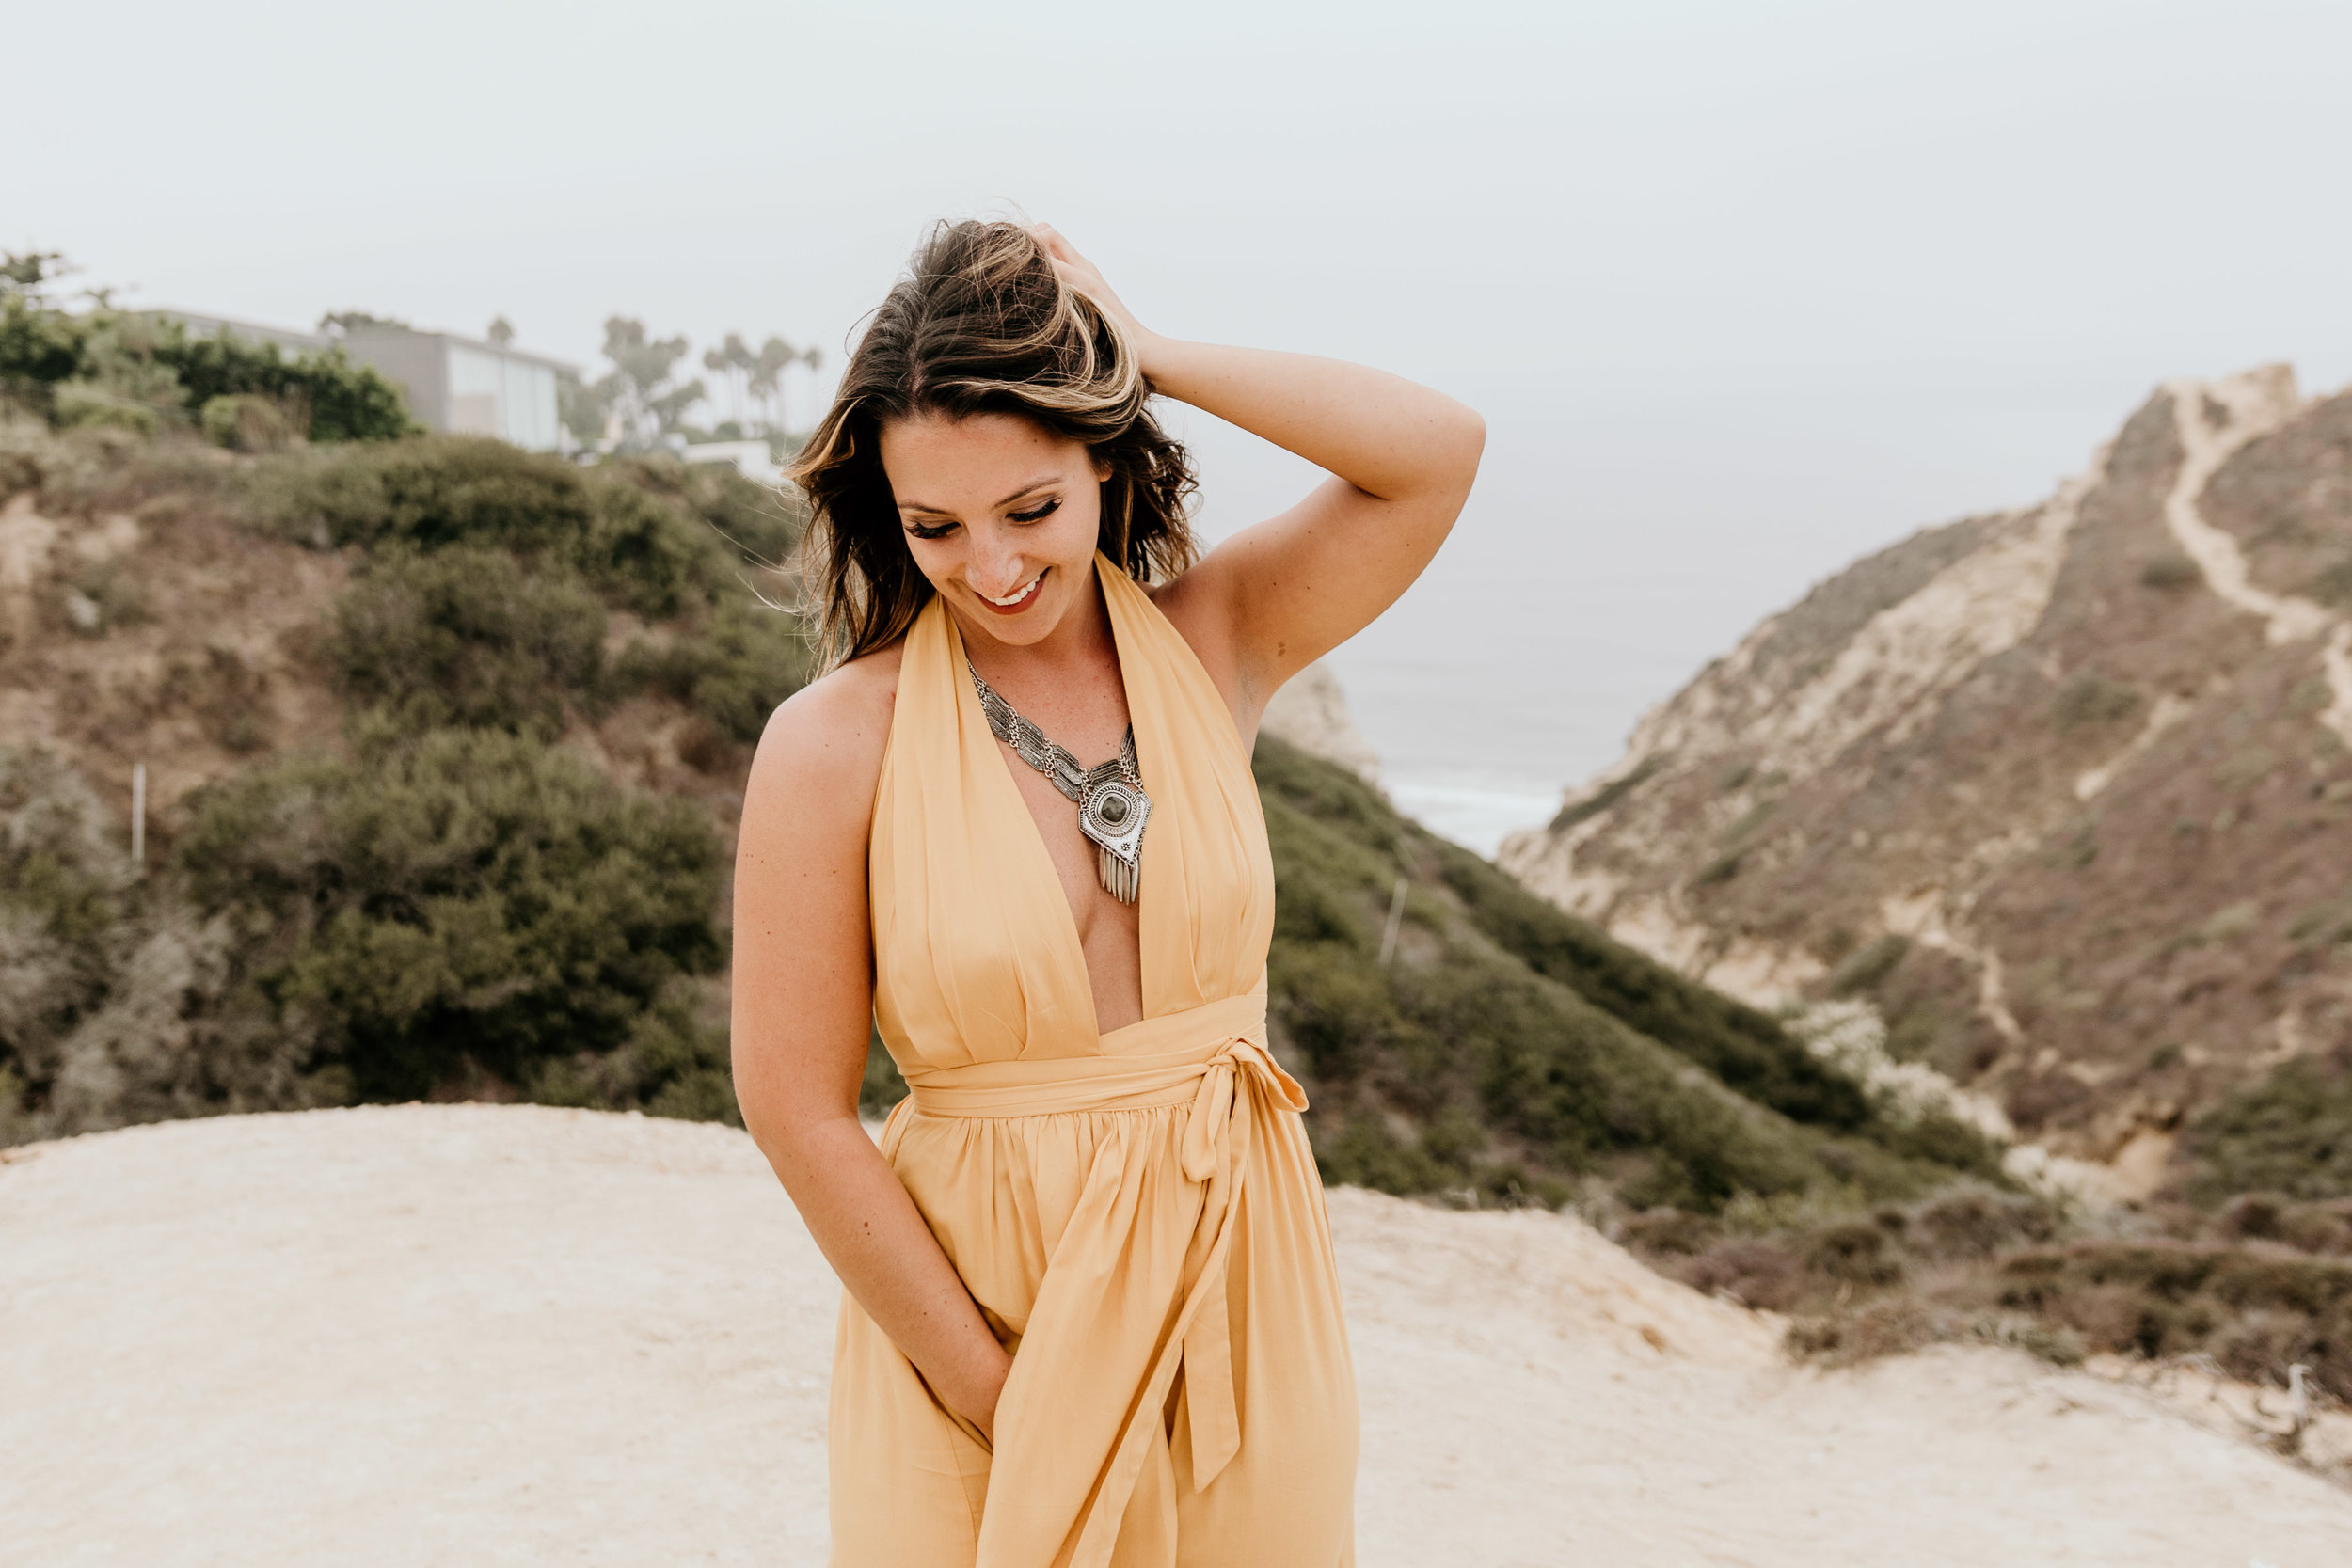 La Jolla Portrait Photography